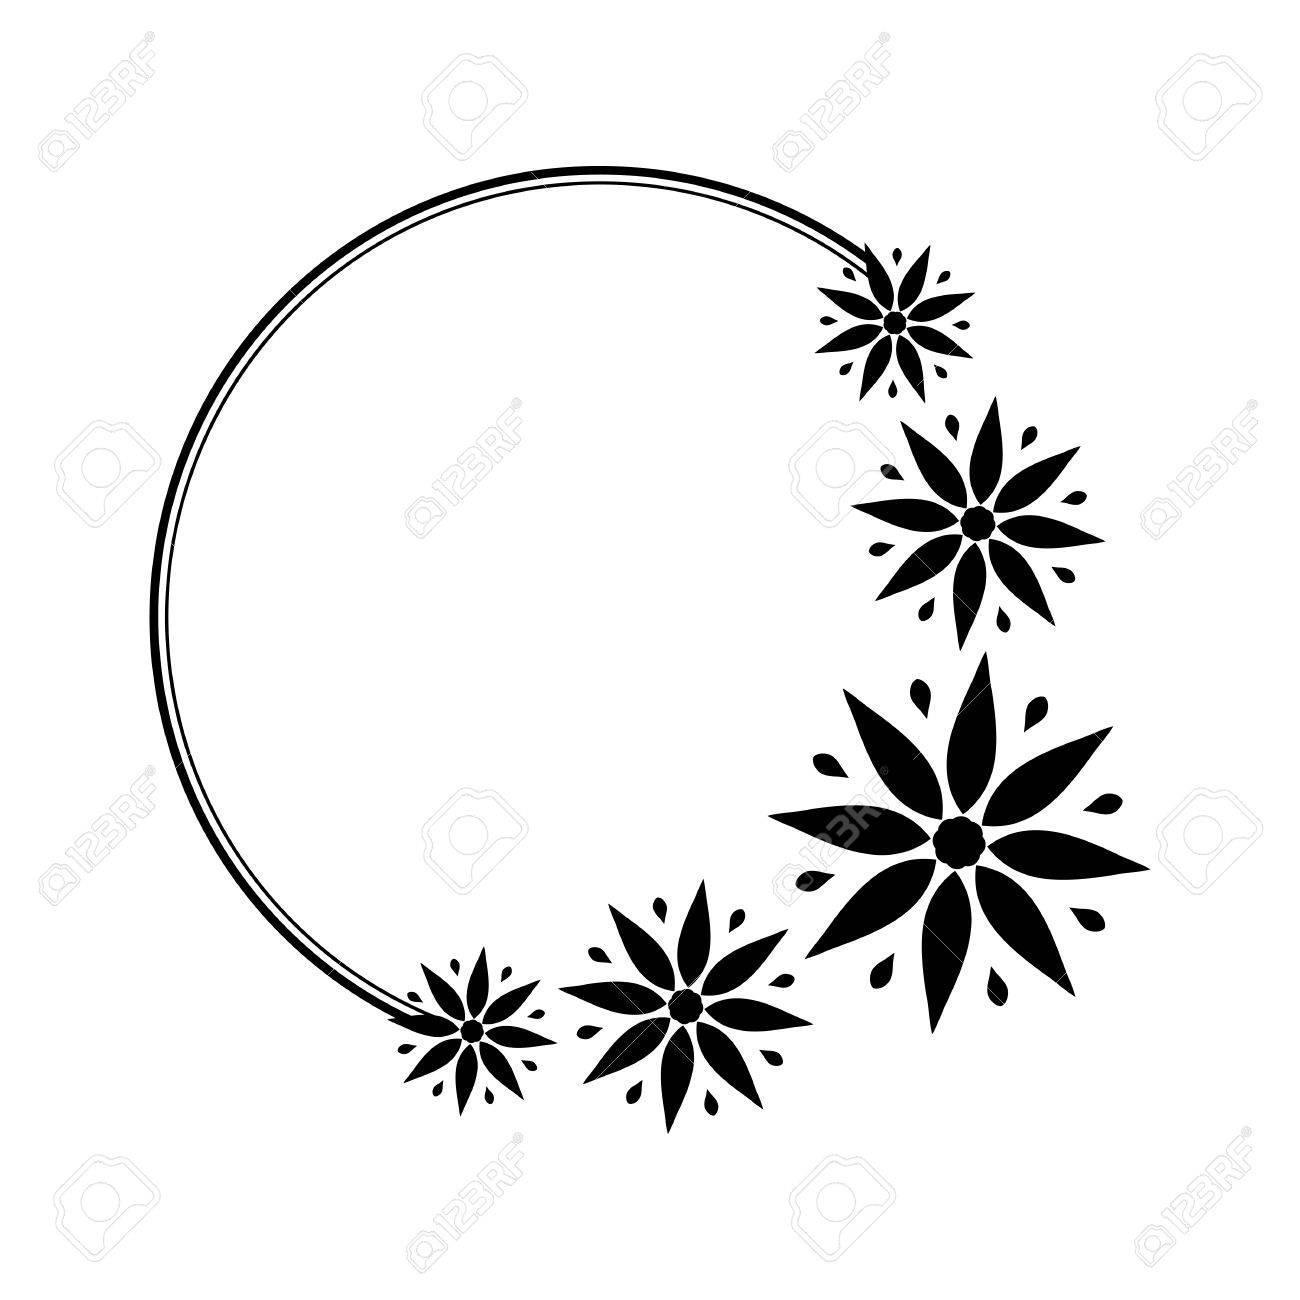 Round Black And White Frame With Stylized Flowers For The Design